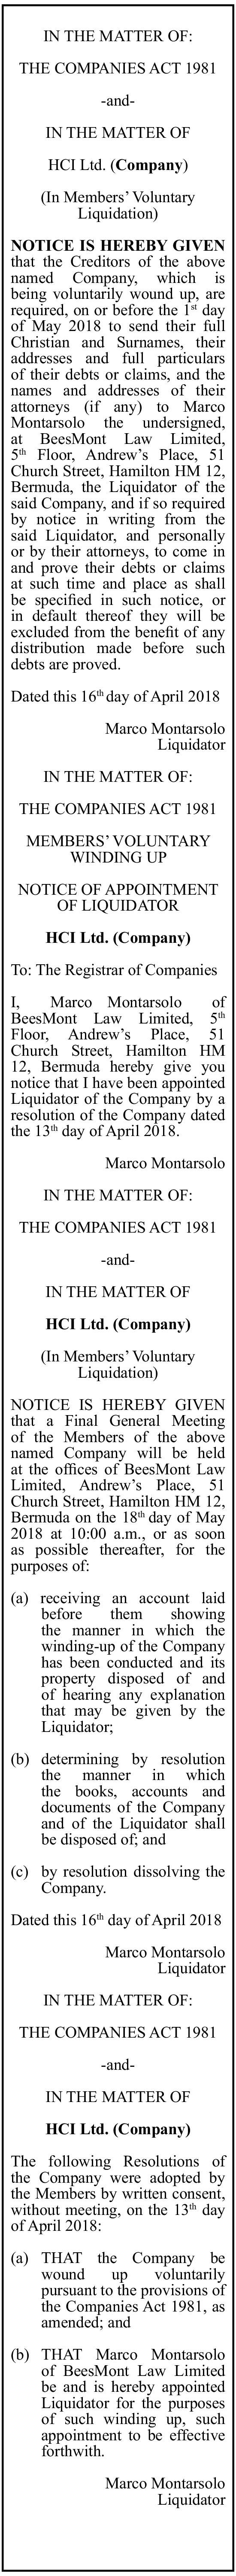 Liquidation Notices HCI Ltd.